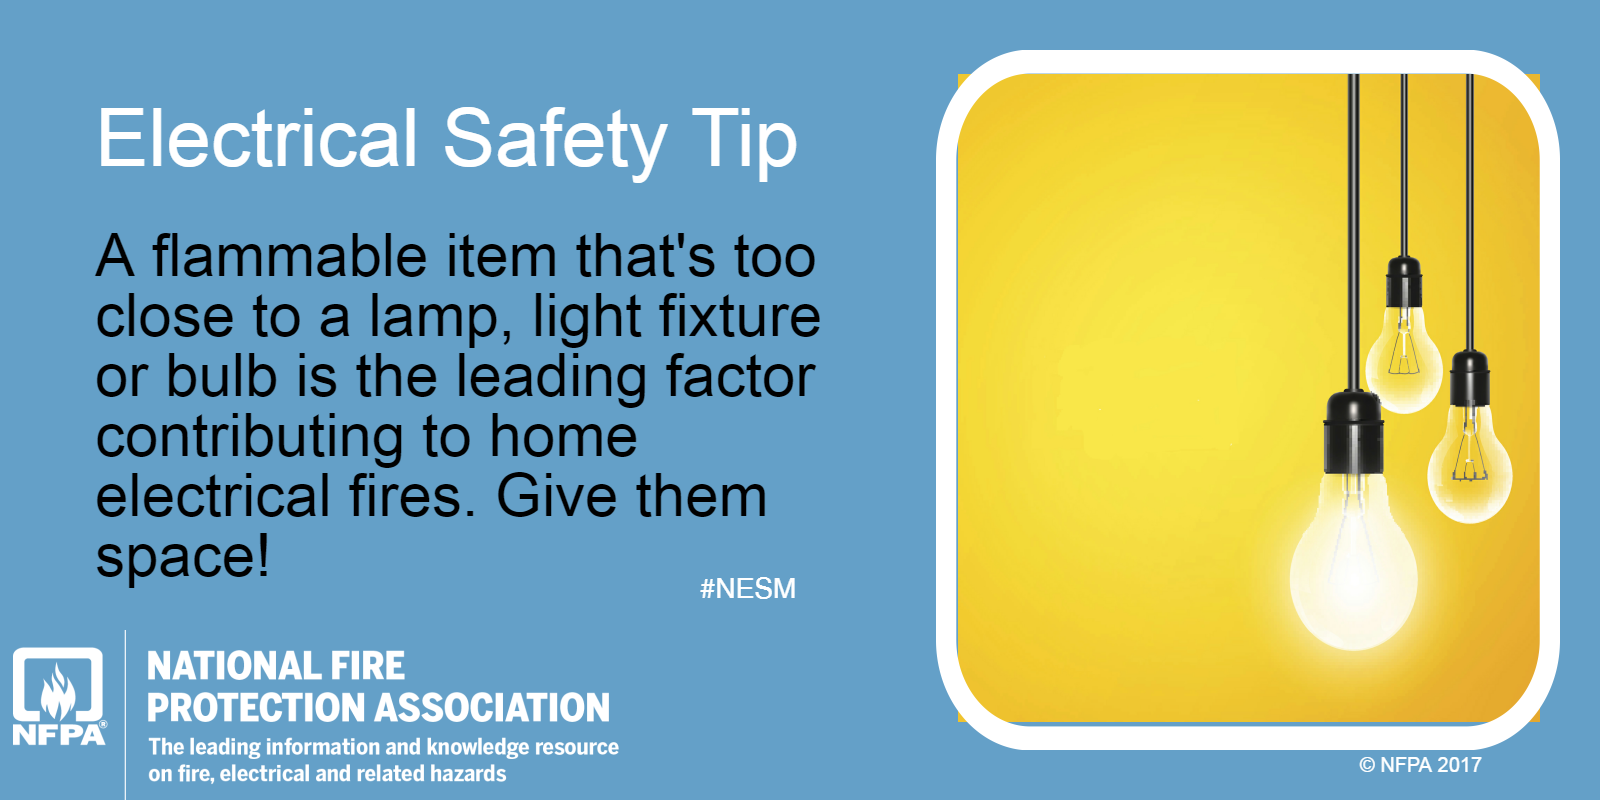 Electrical safety tip